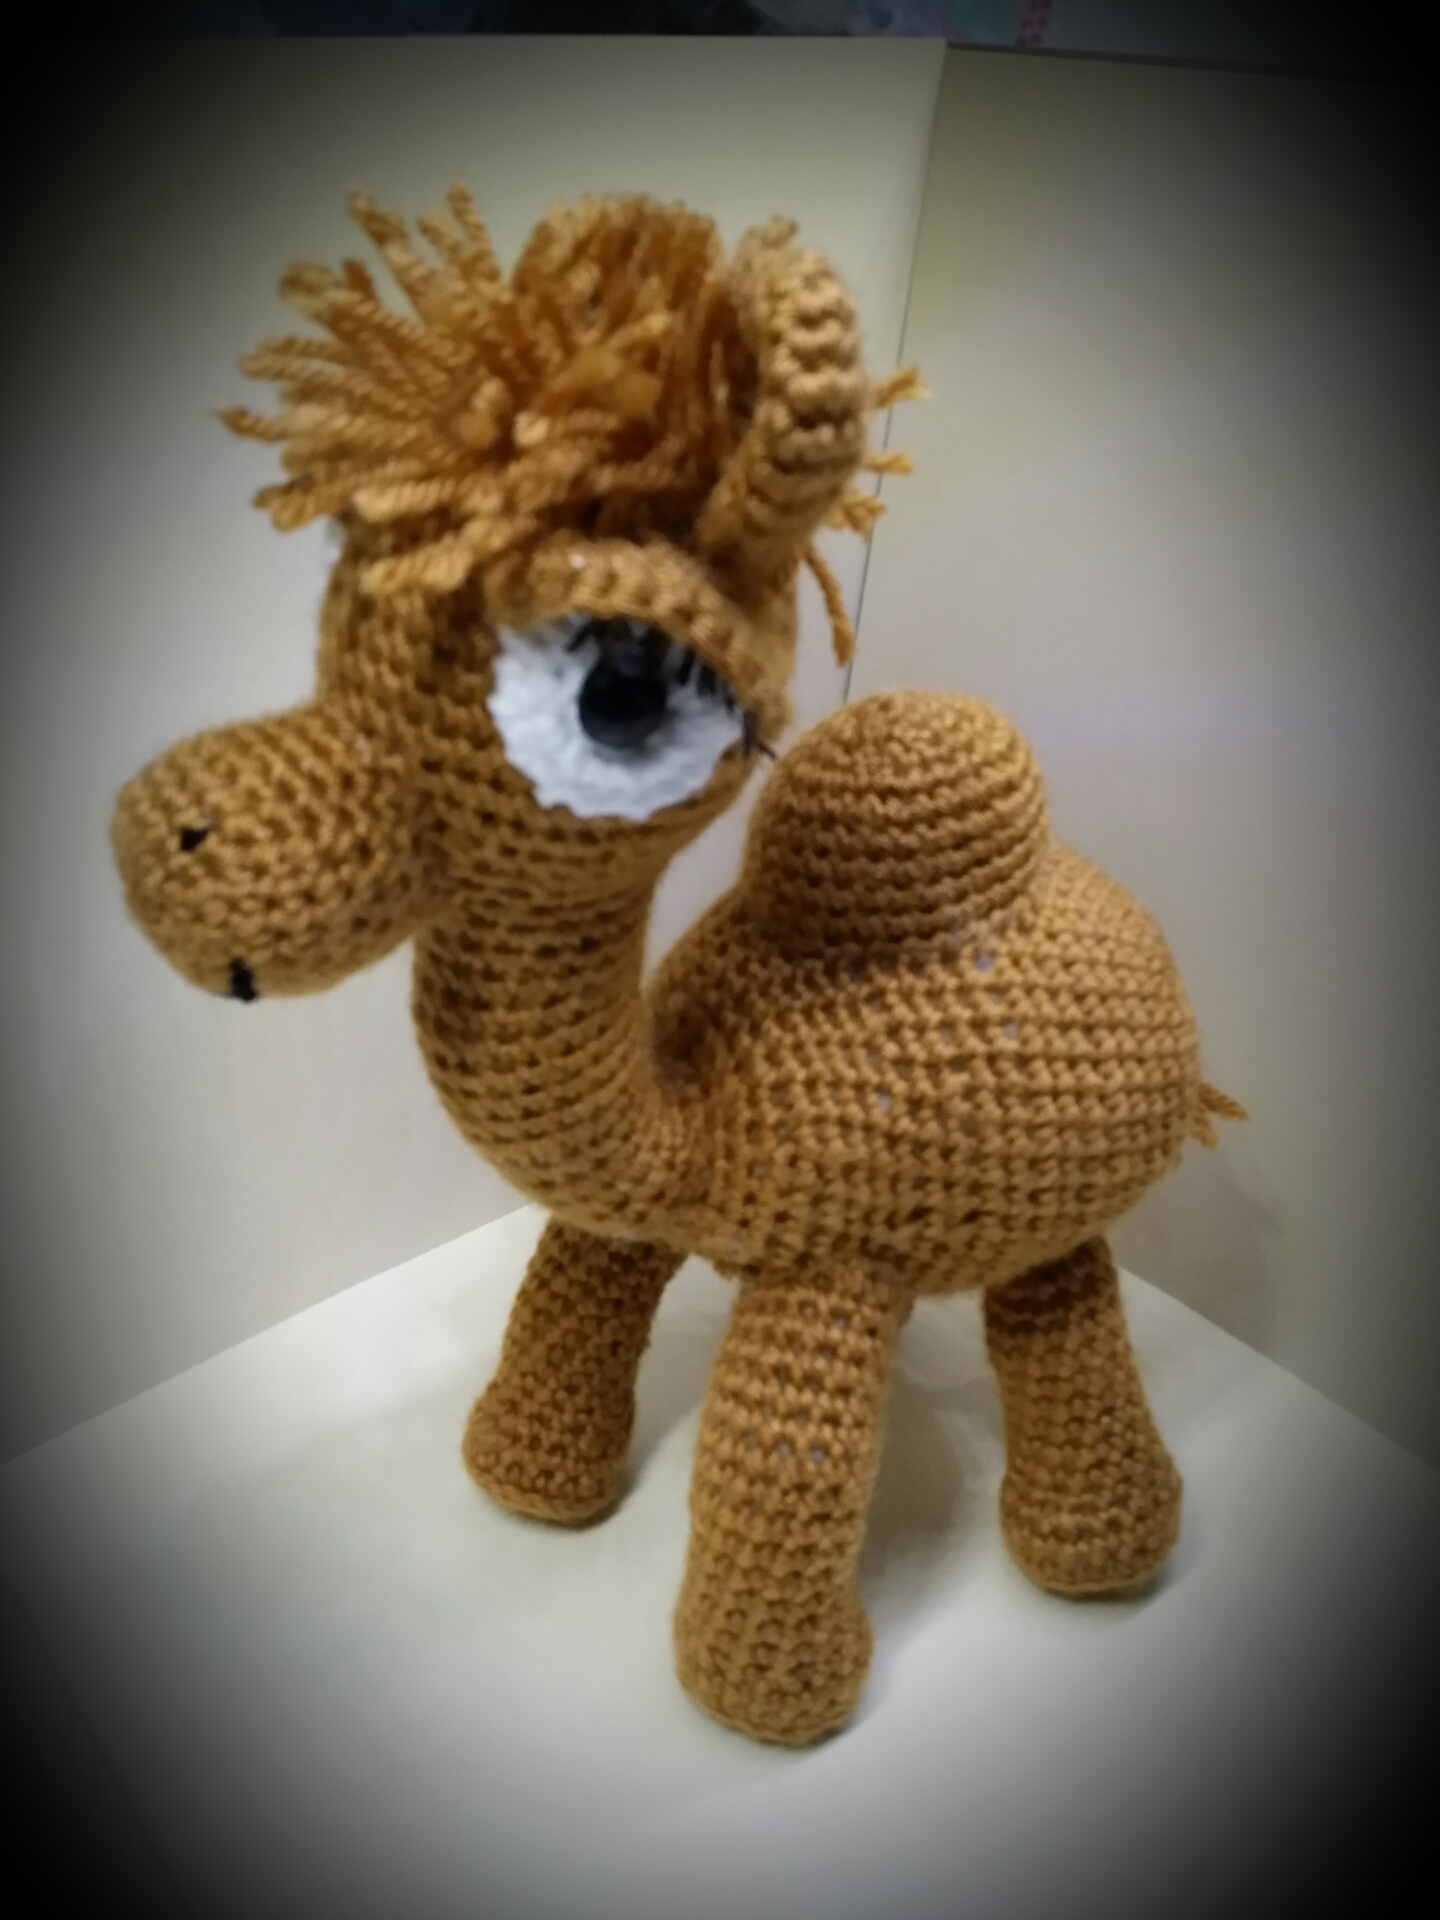 Crochet Camel Stuffed Animal 183 Jatdesigns 183 Online Store